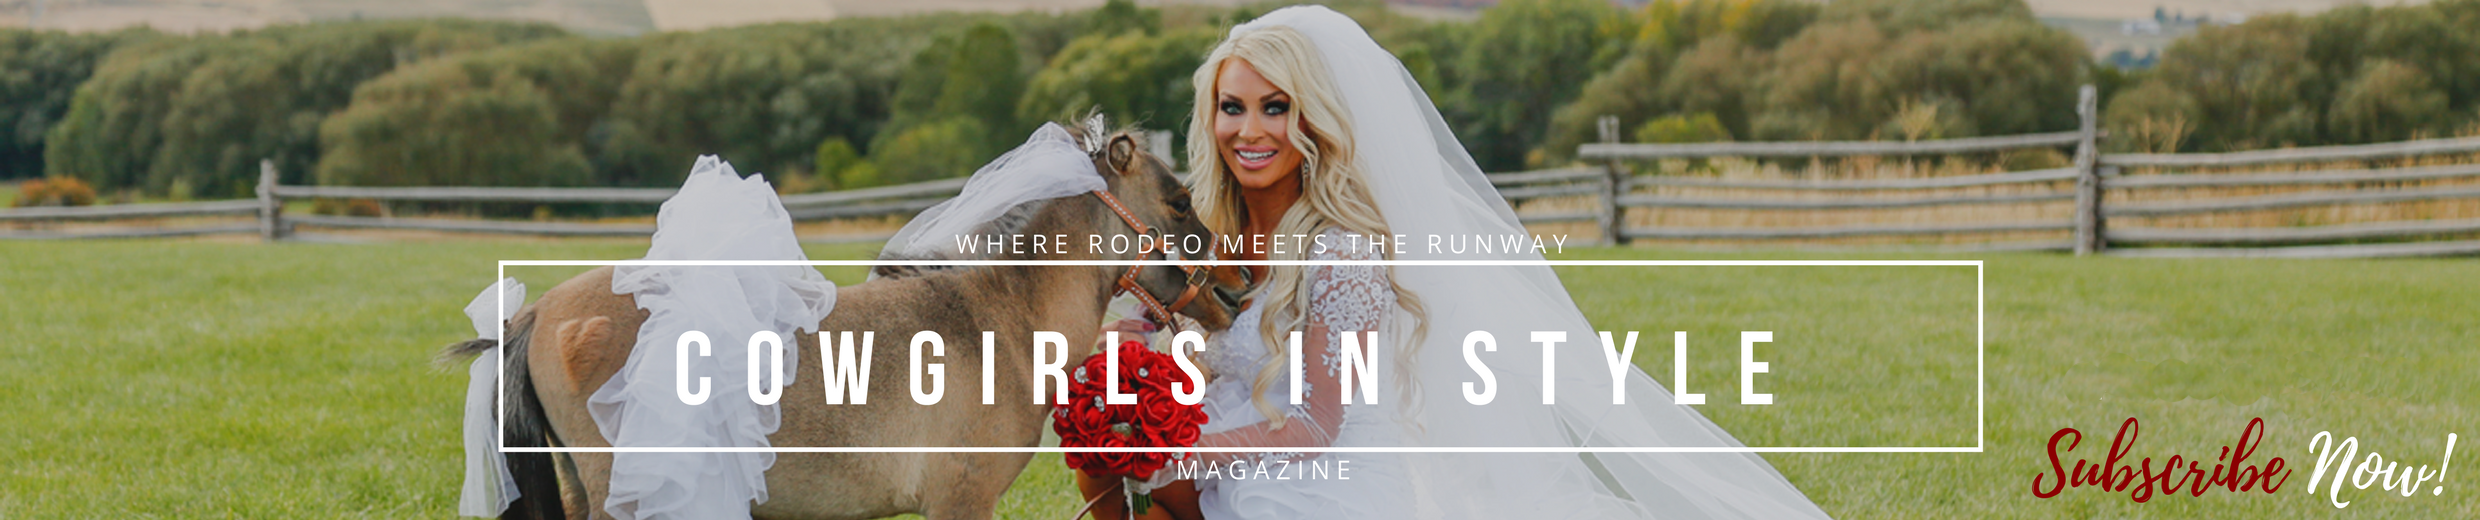 Advertise - Cowgirls In Style Magazine